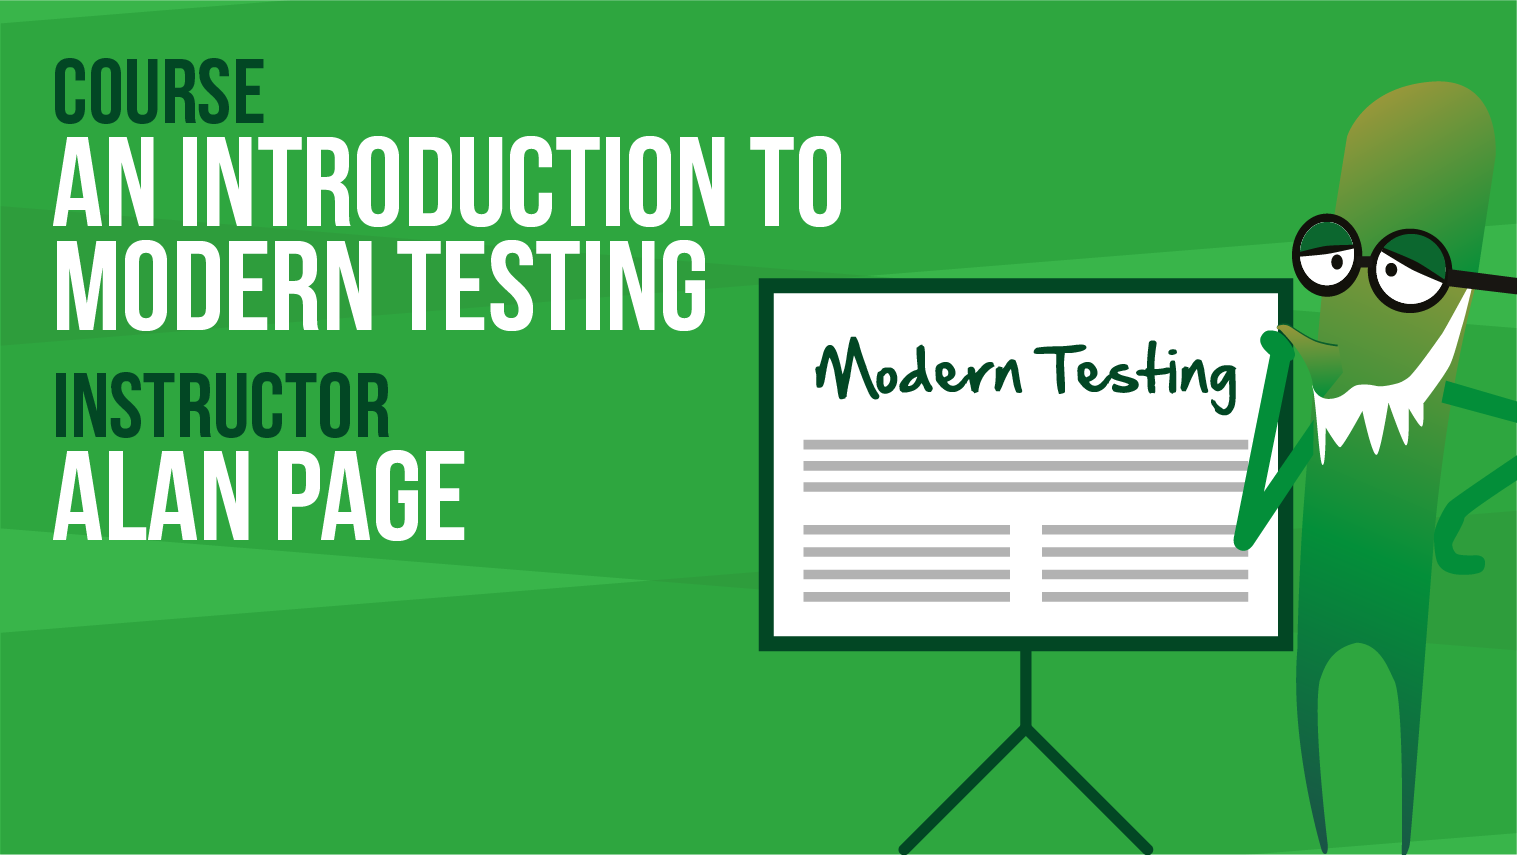 Introduction To Modern Testing - Alan Page